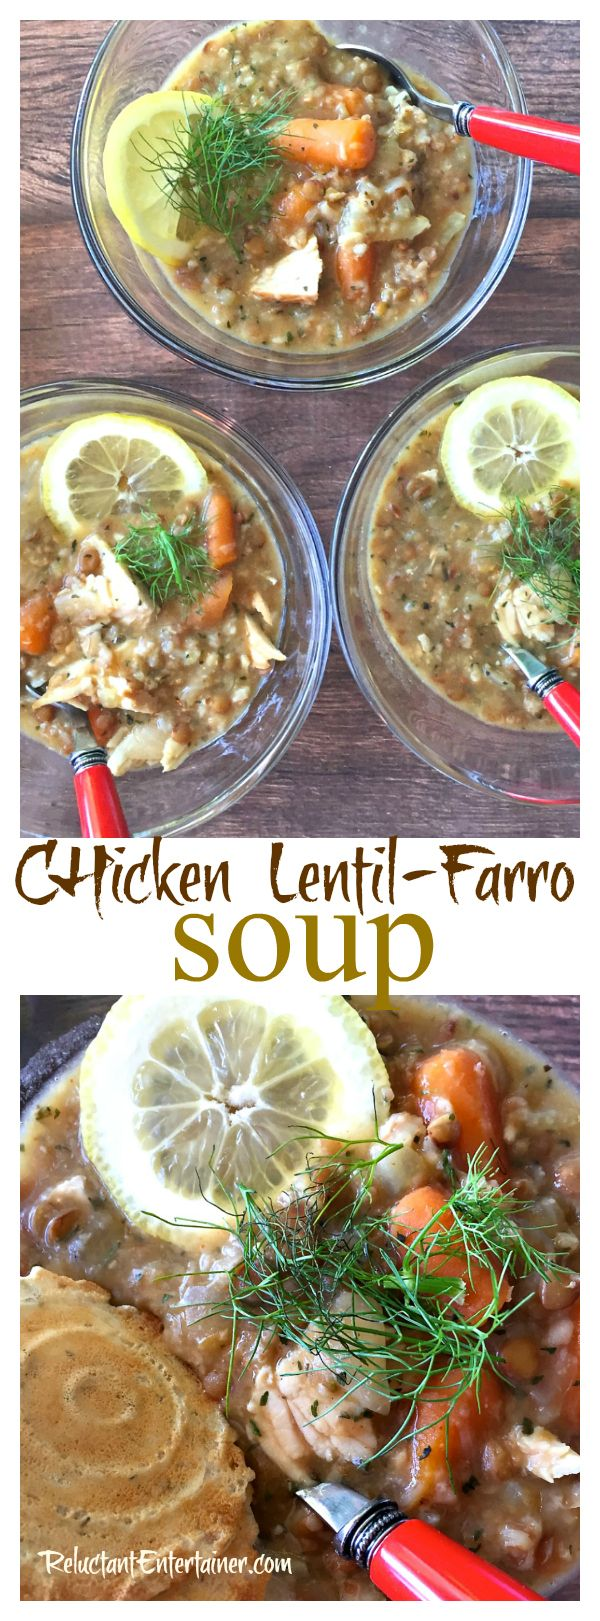 Chicken Lentil-Farro Soup - easy crock pot meal with fresh grains and ...